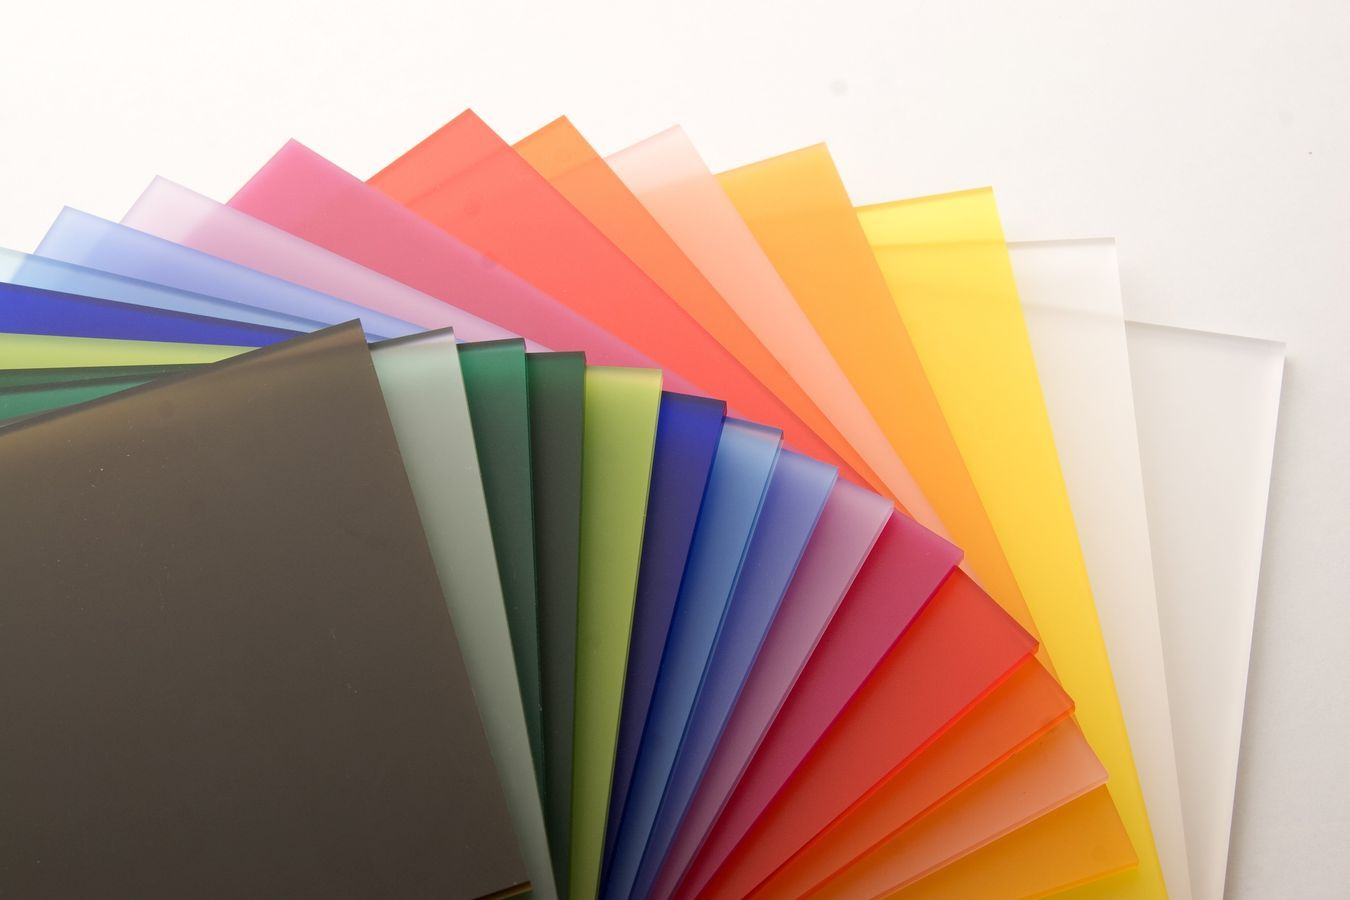 The Top Advantages Of Acrylic Plastic Acrylic Plastic Acrylic Plastic Sheets Plastic Sheets